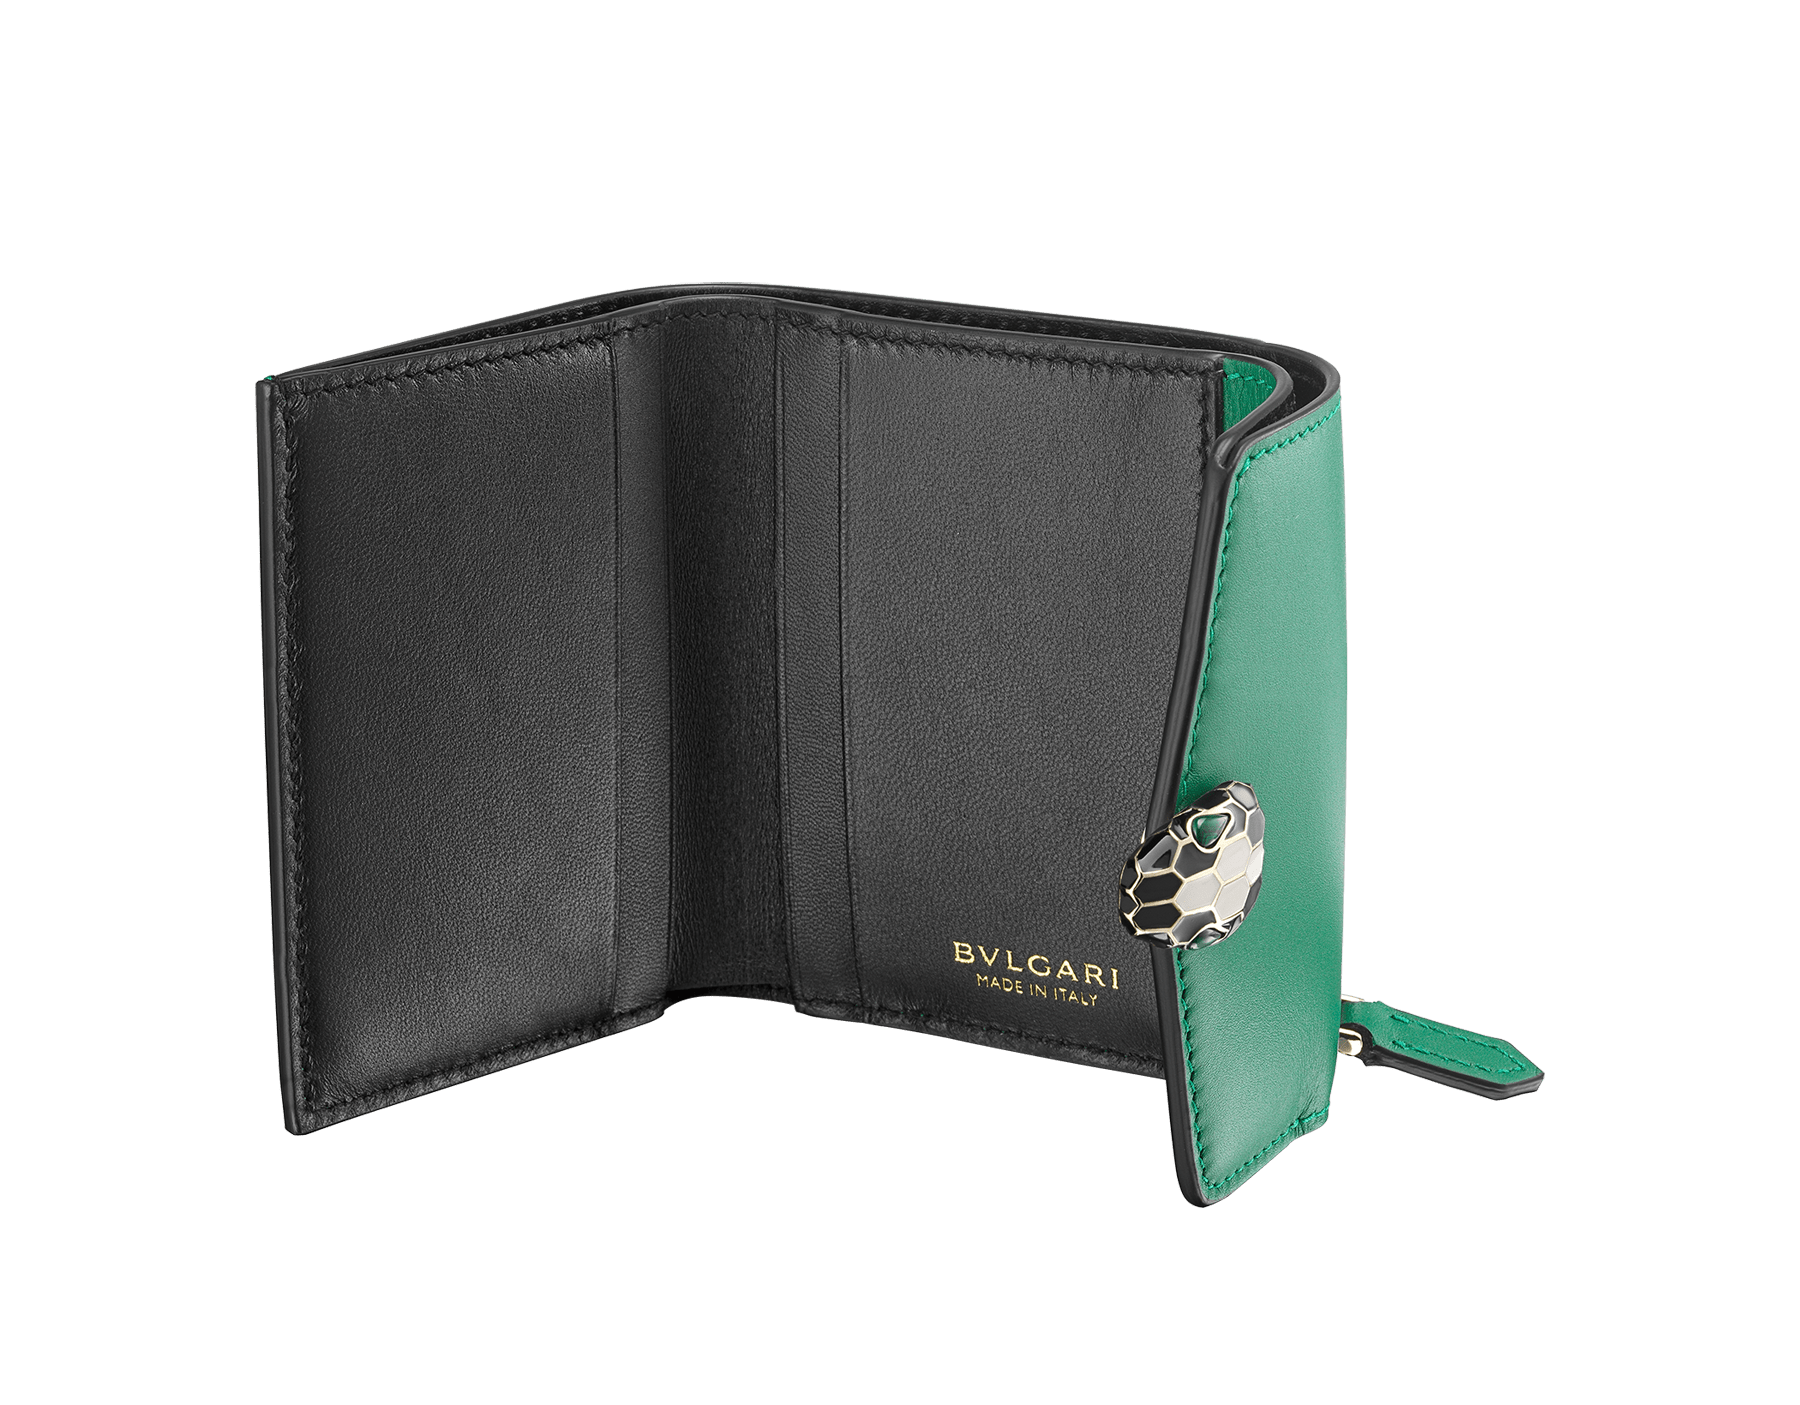 Serpenti Forever compact wallet in daisy topaz calf leather and white agate goatskin. Iconic light gold plated brass snake head stud closure in white agate and daisy topaz enamel, with black onyx eyes. SEA-SLIMCOMPACT-CLa image 3